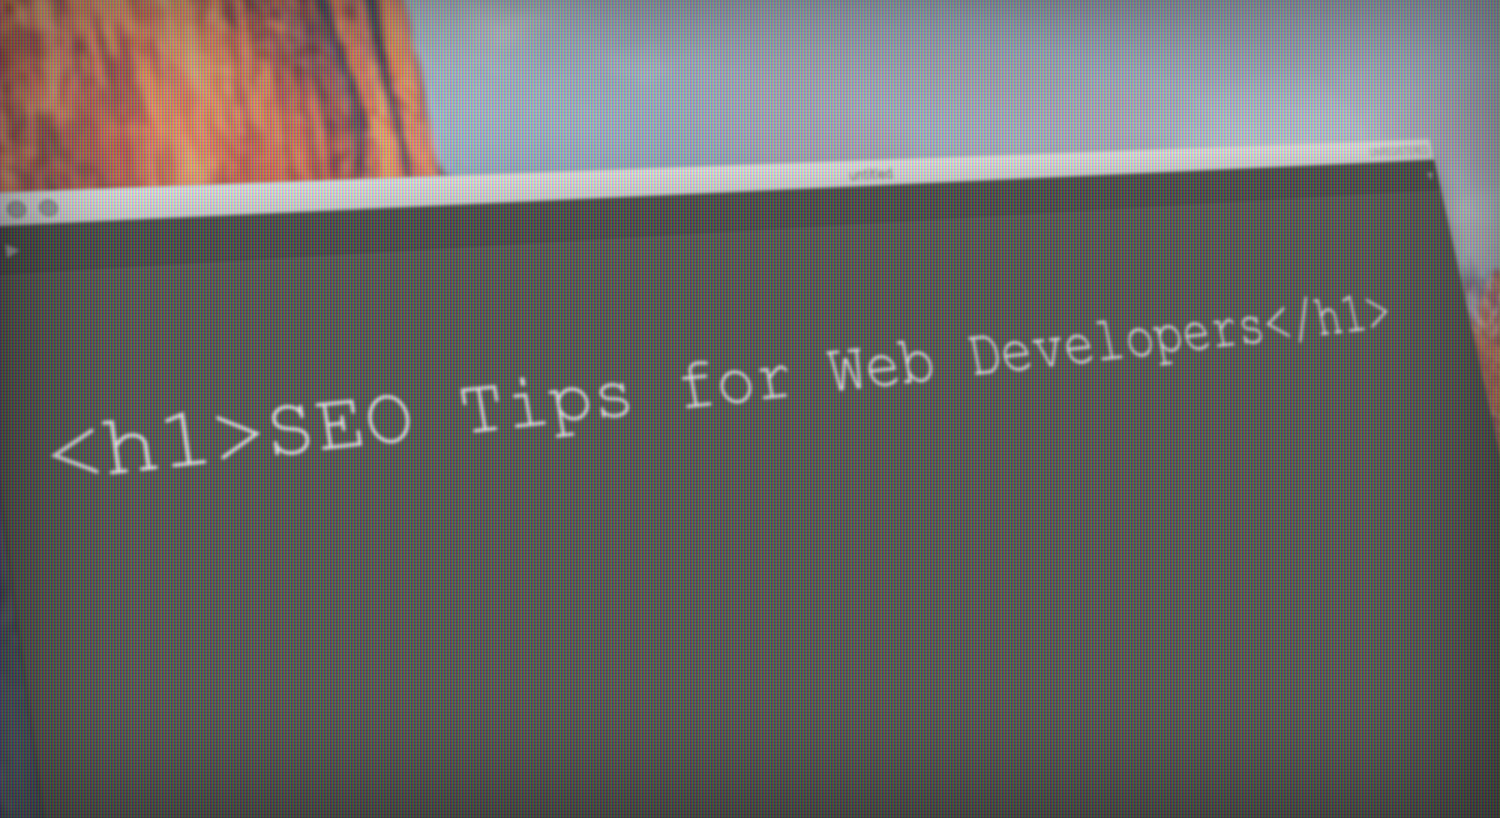 SEO Tips for Web Developers